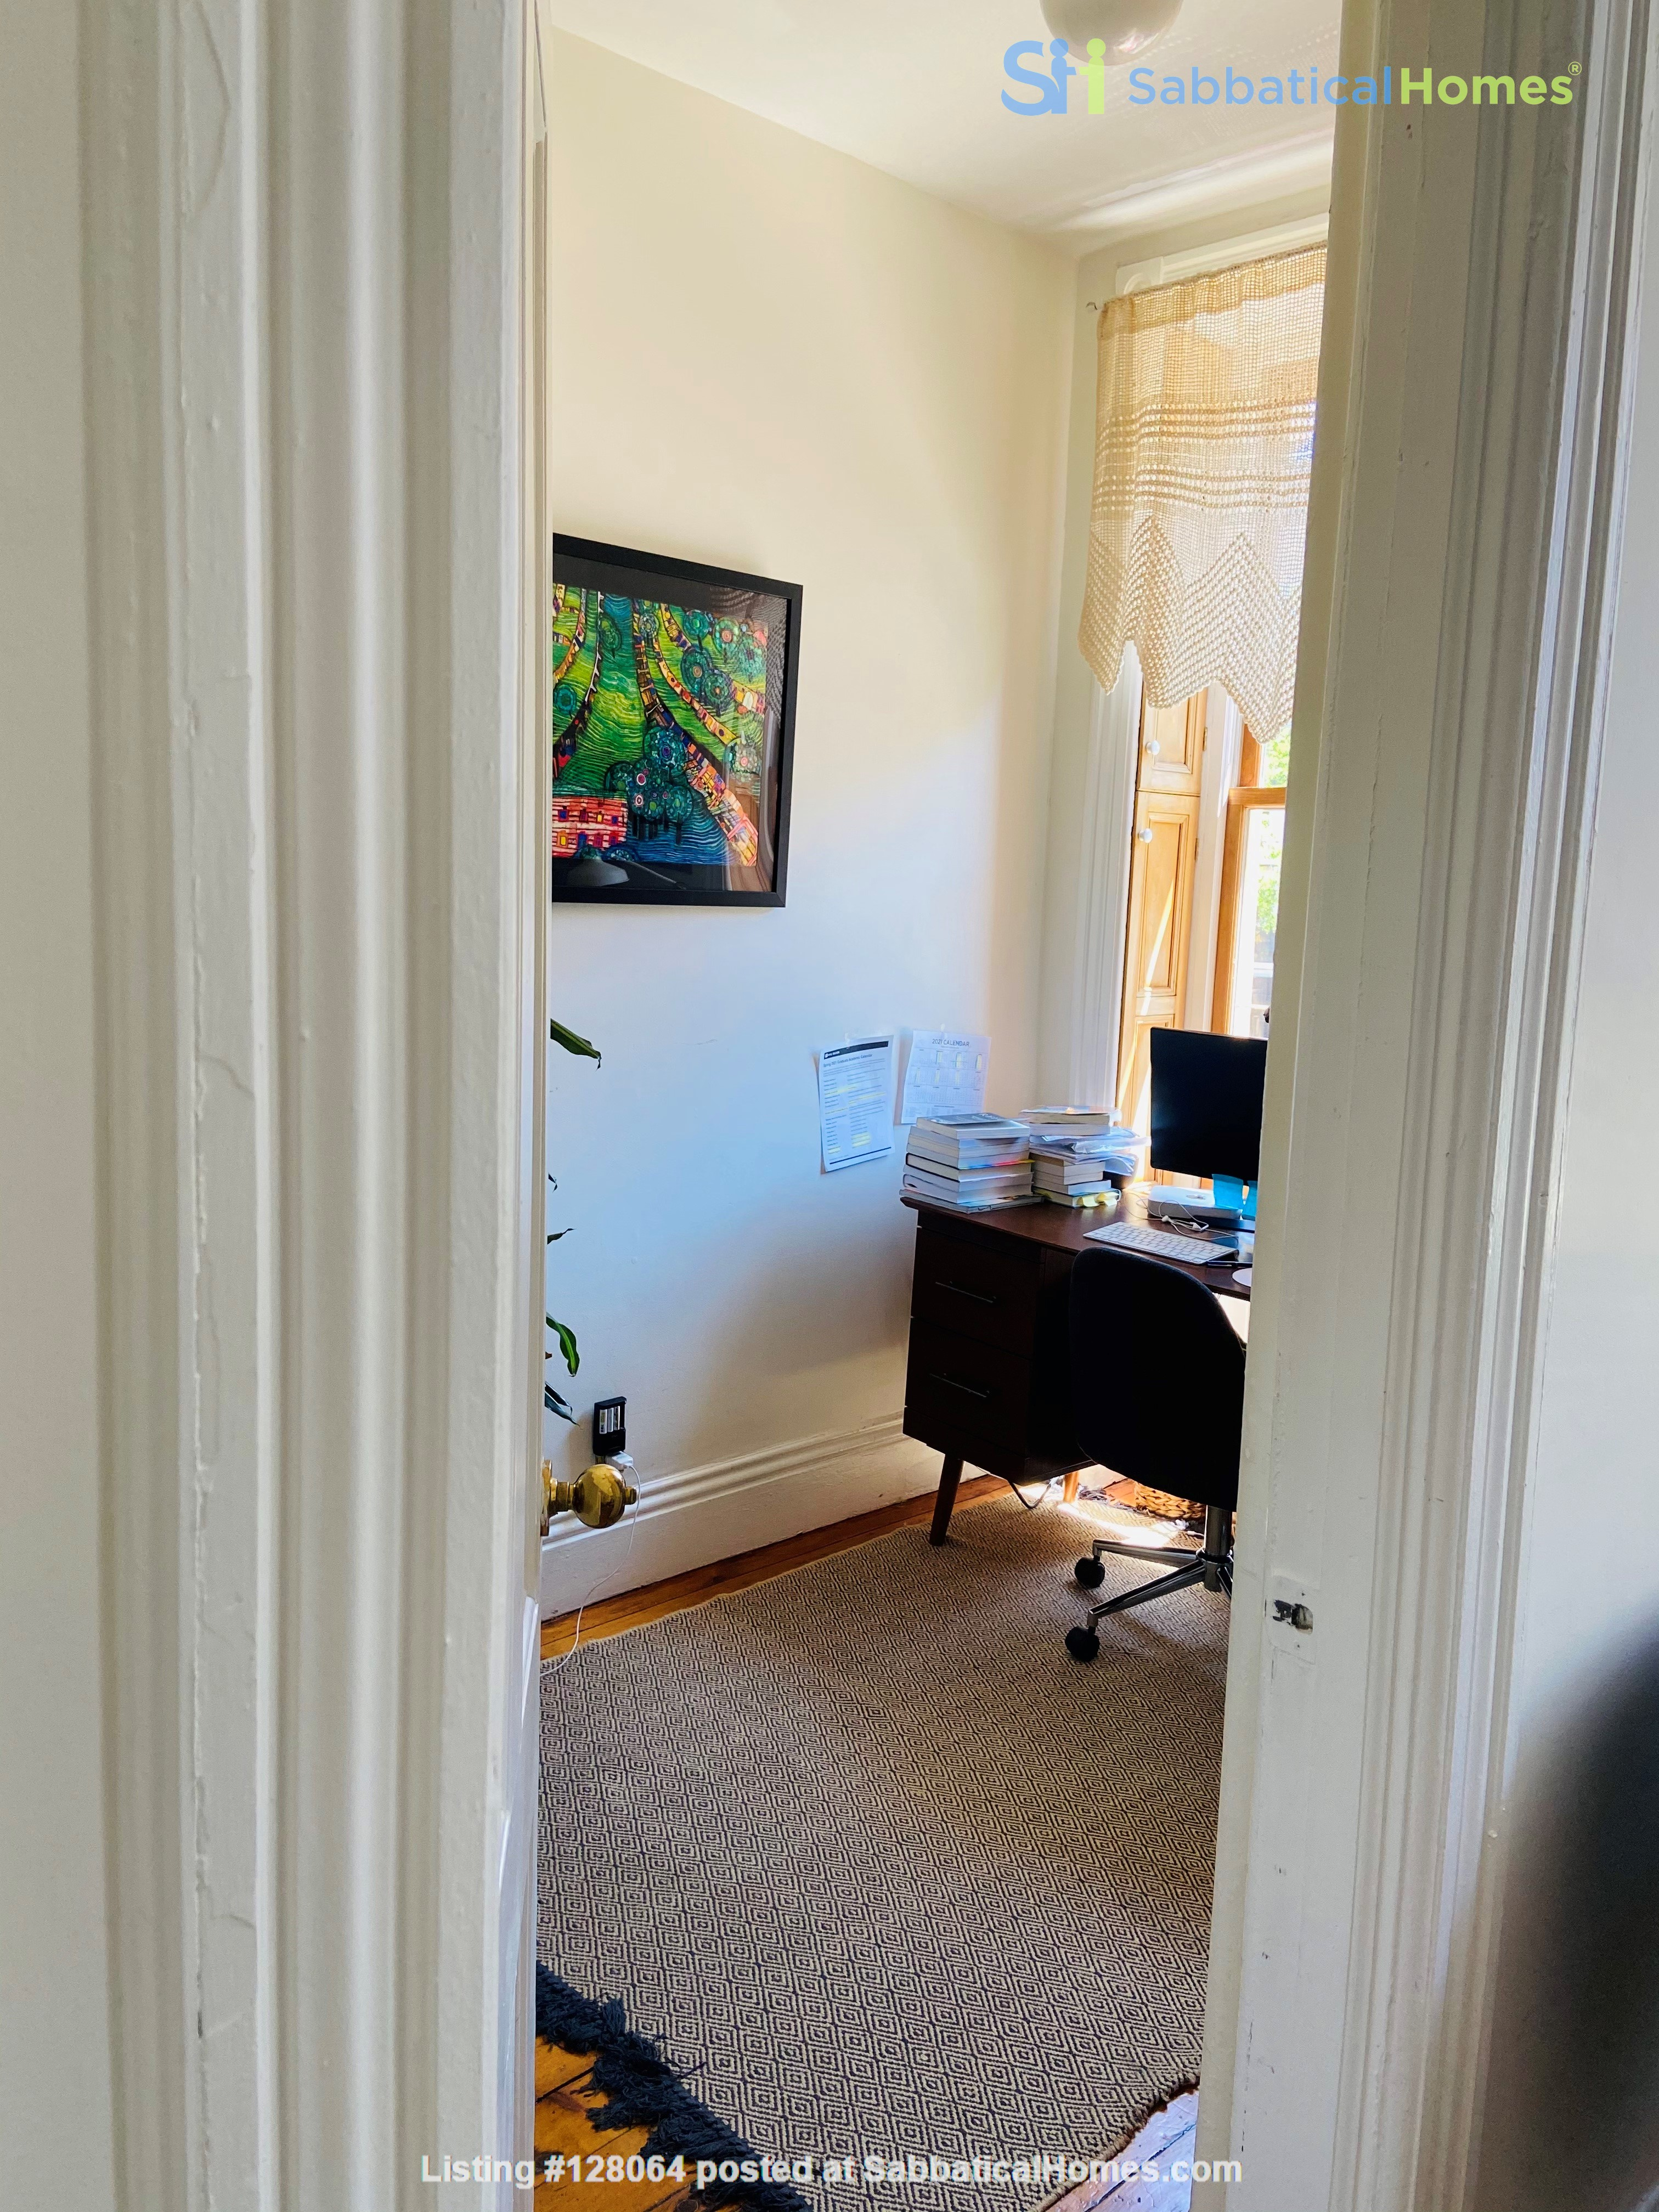 Apartment sublet in New York Home Rental in Kings County, New York, United States 3